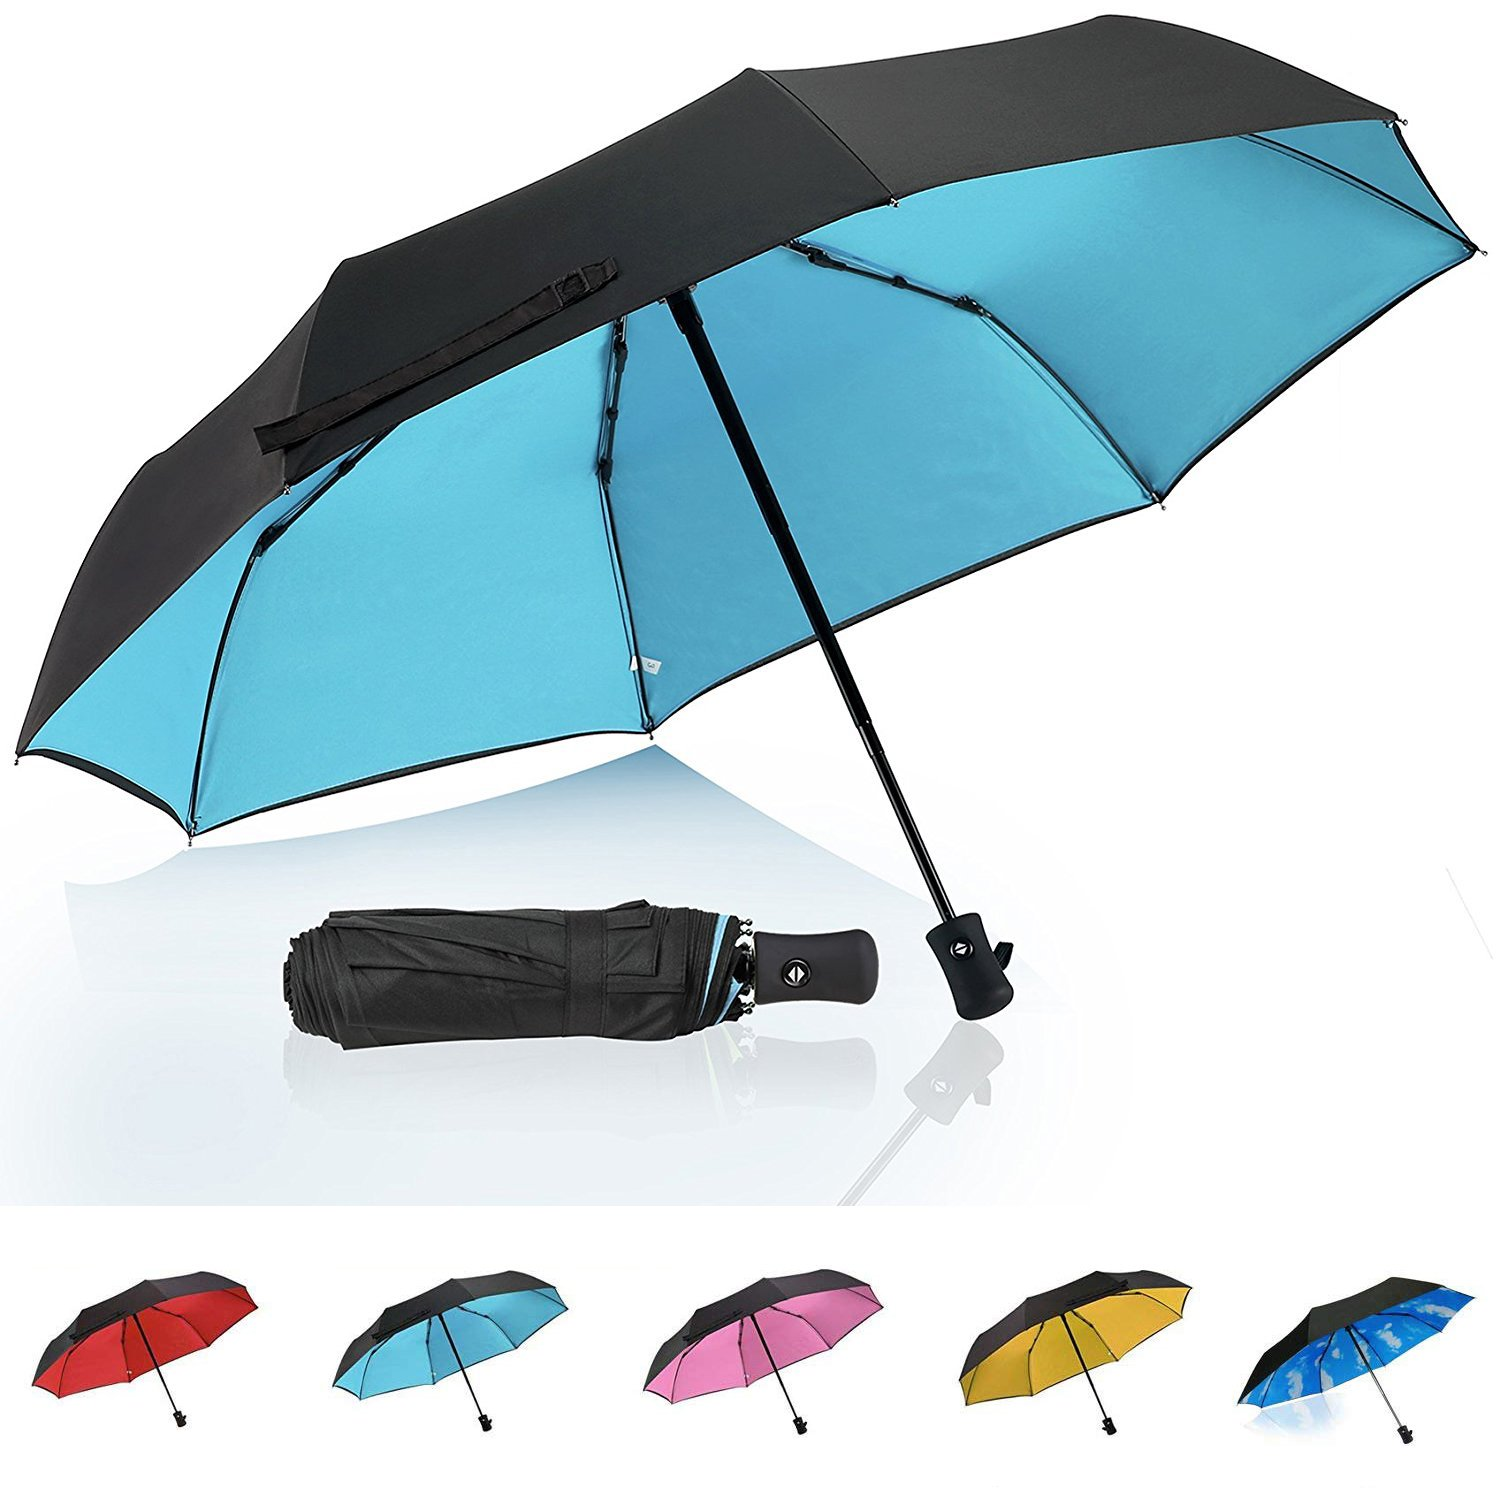 QHUMO Travel Umbrella Windproof with Double Layer, Collapsible Compact Umbrellas for Women and Men, 8 Ribs Auto Open Close Folding Umbrella - One Handed Operation (BLUE)